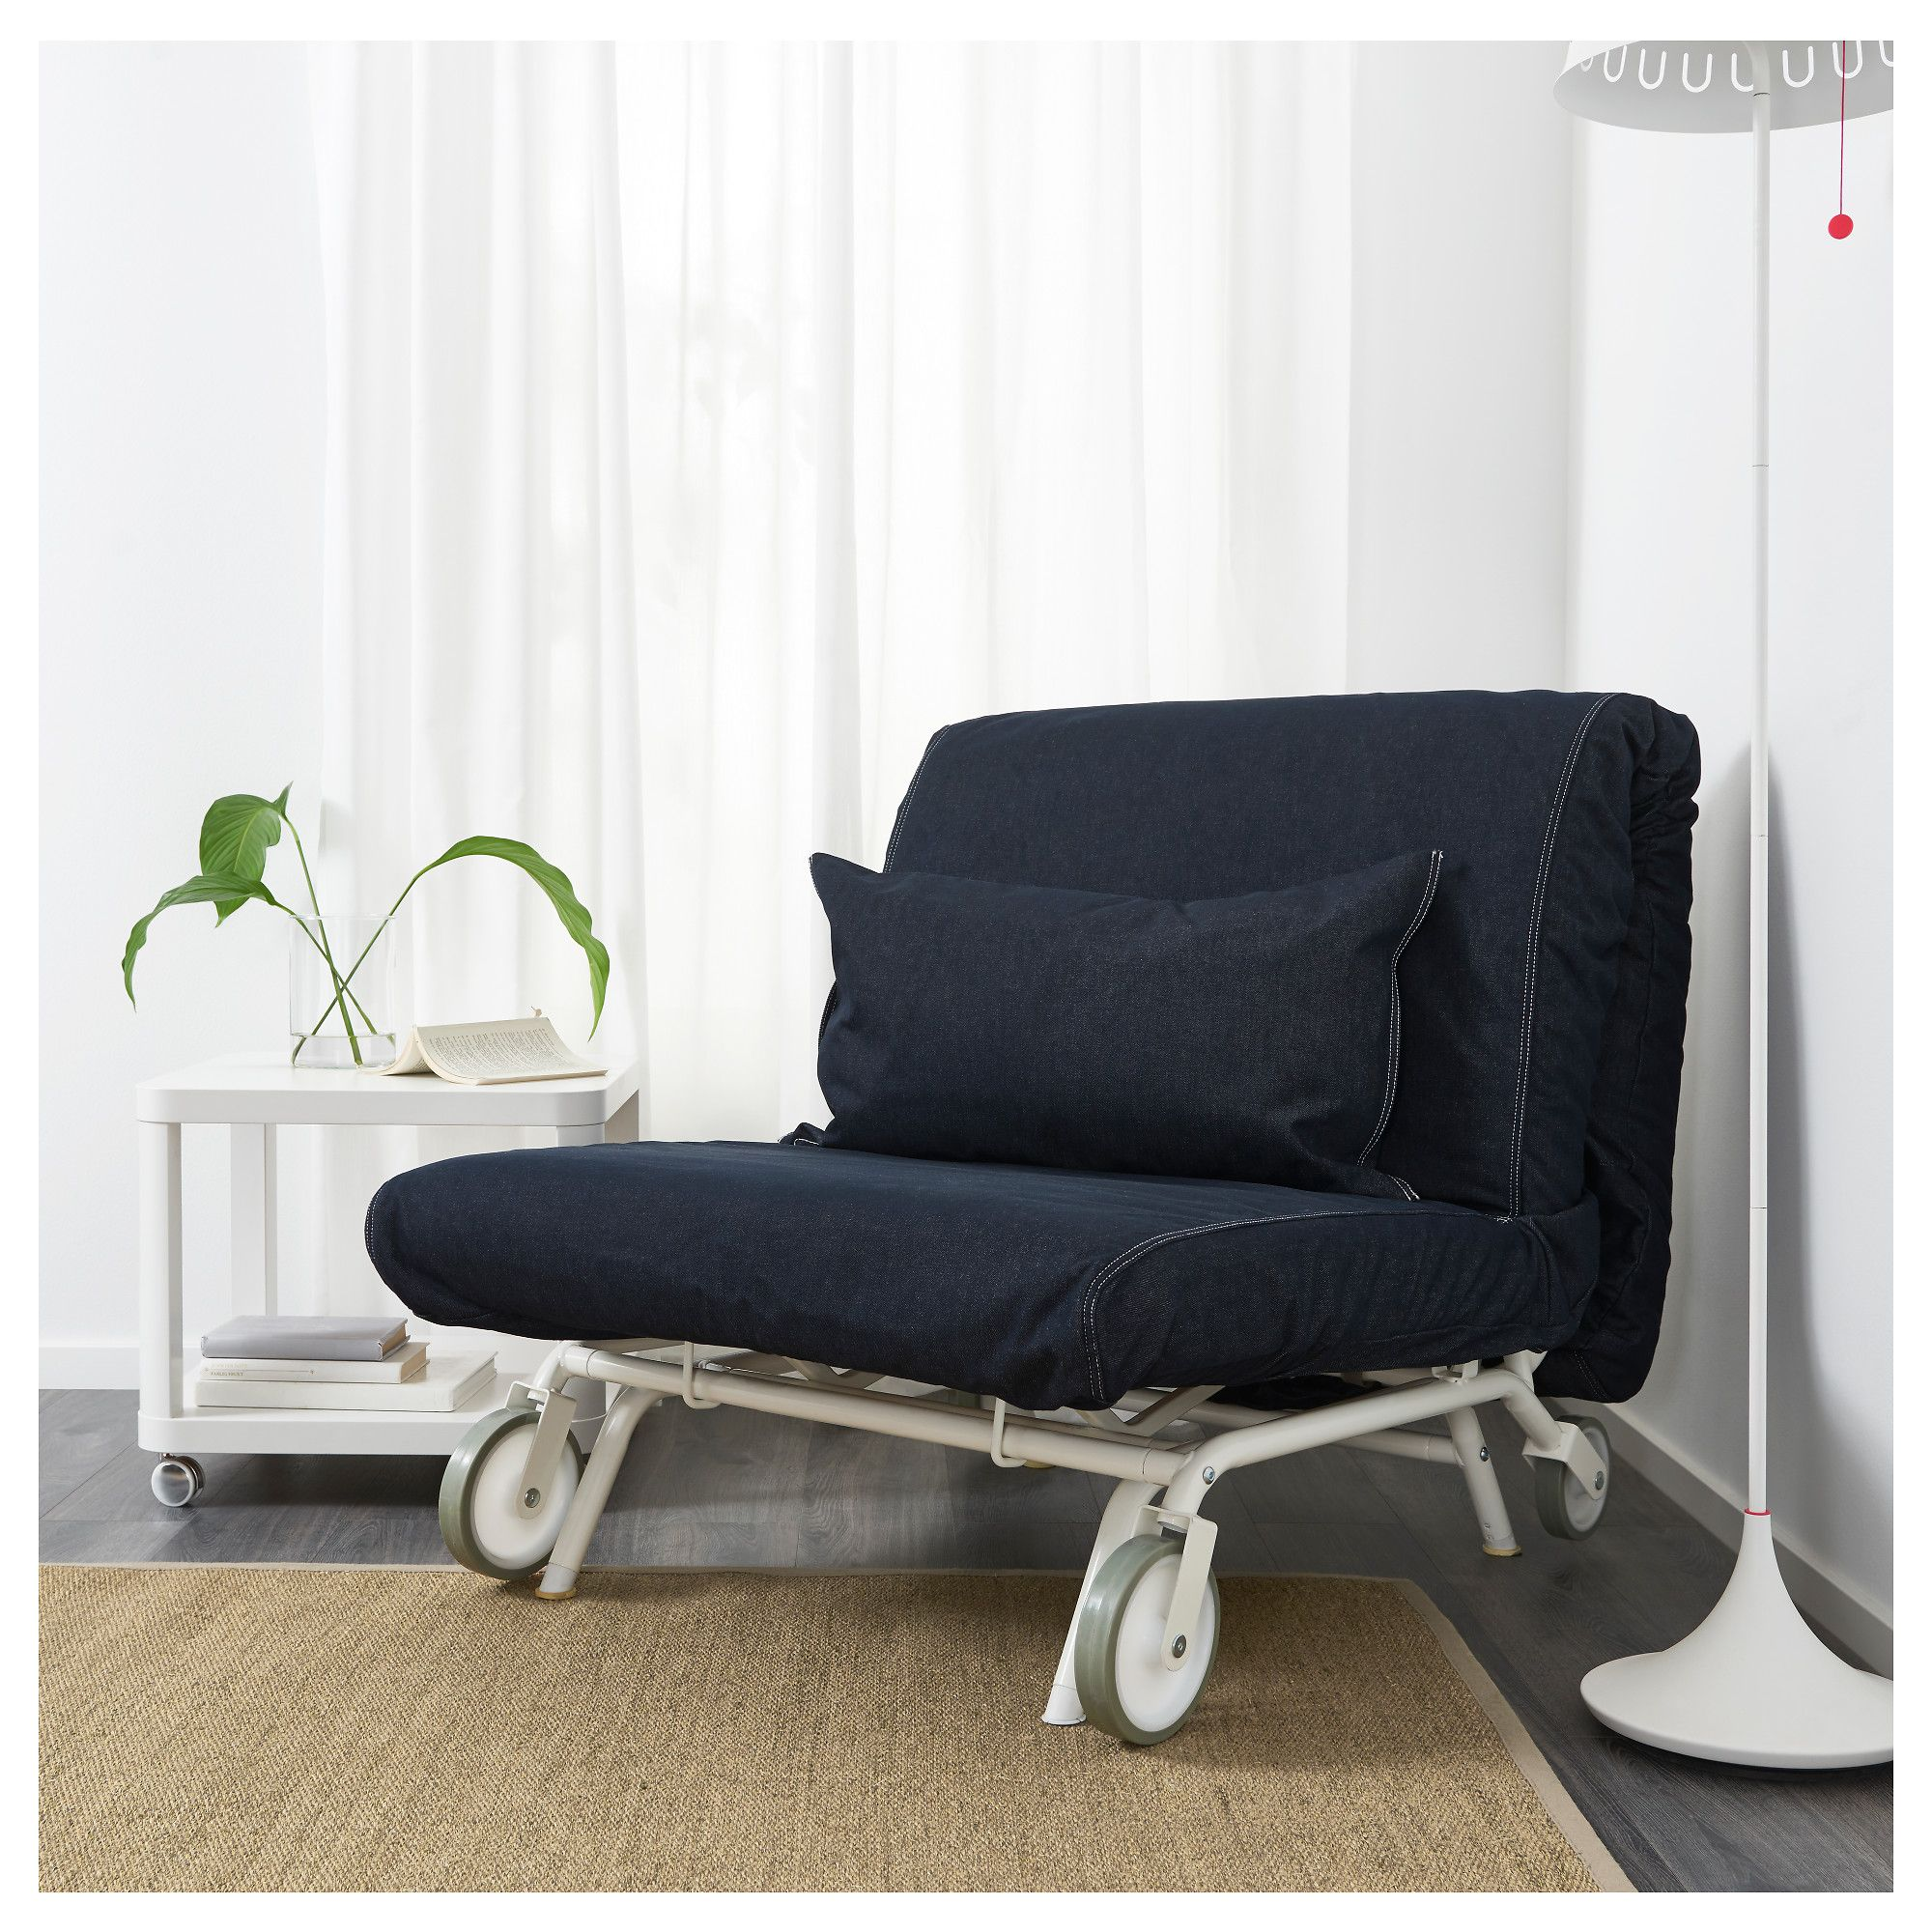 Ikea Ps Murbo Sleeper Chair Ikea Bed Pull Out Sofa Bed Sofa